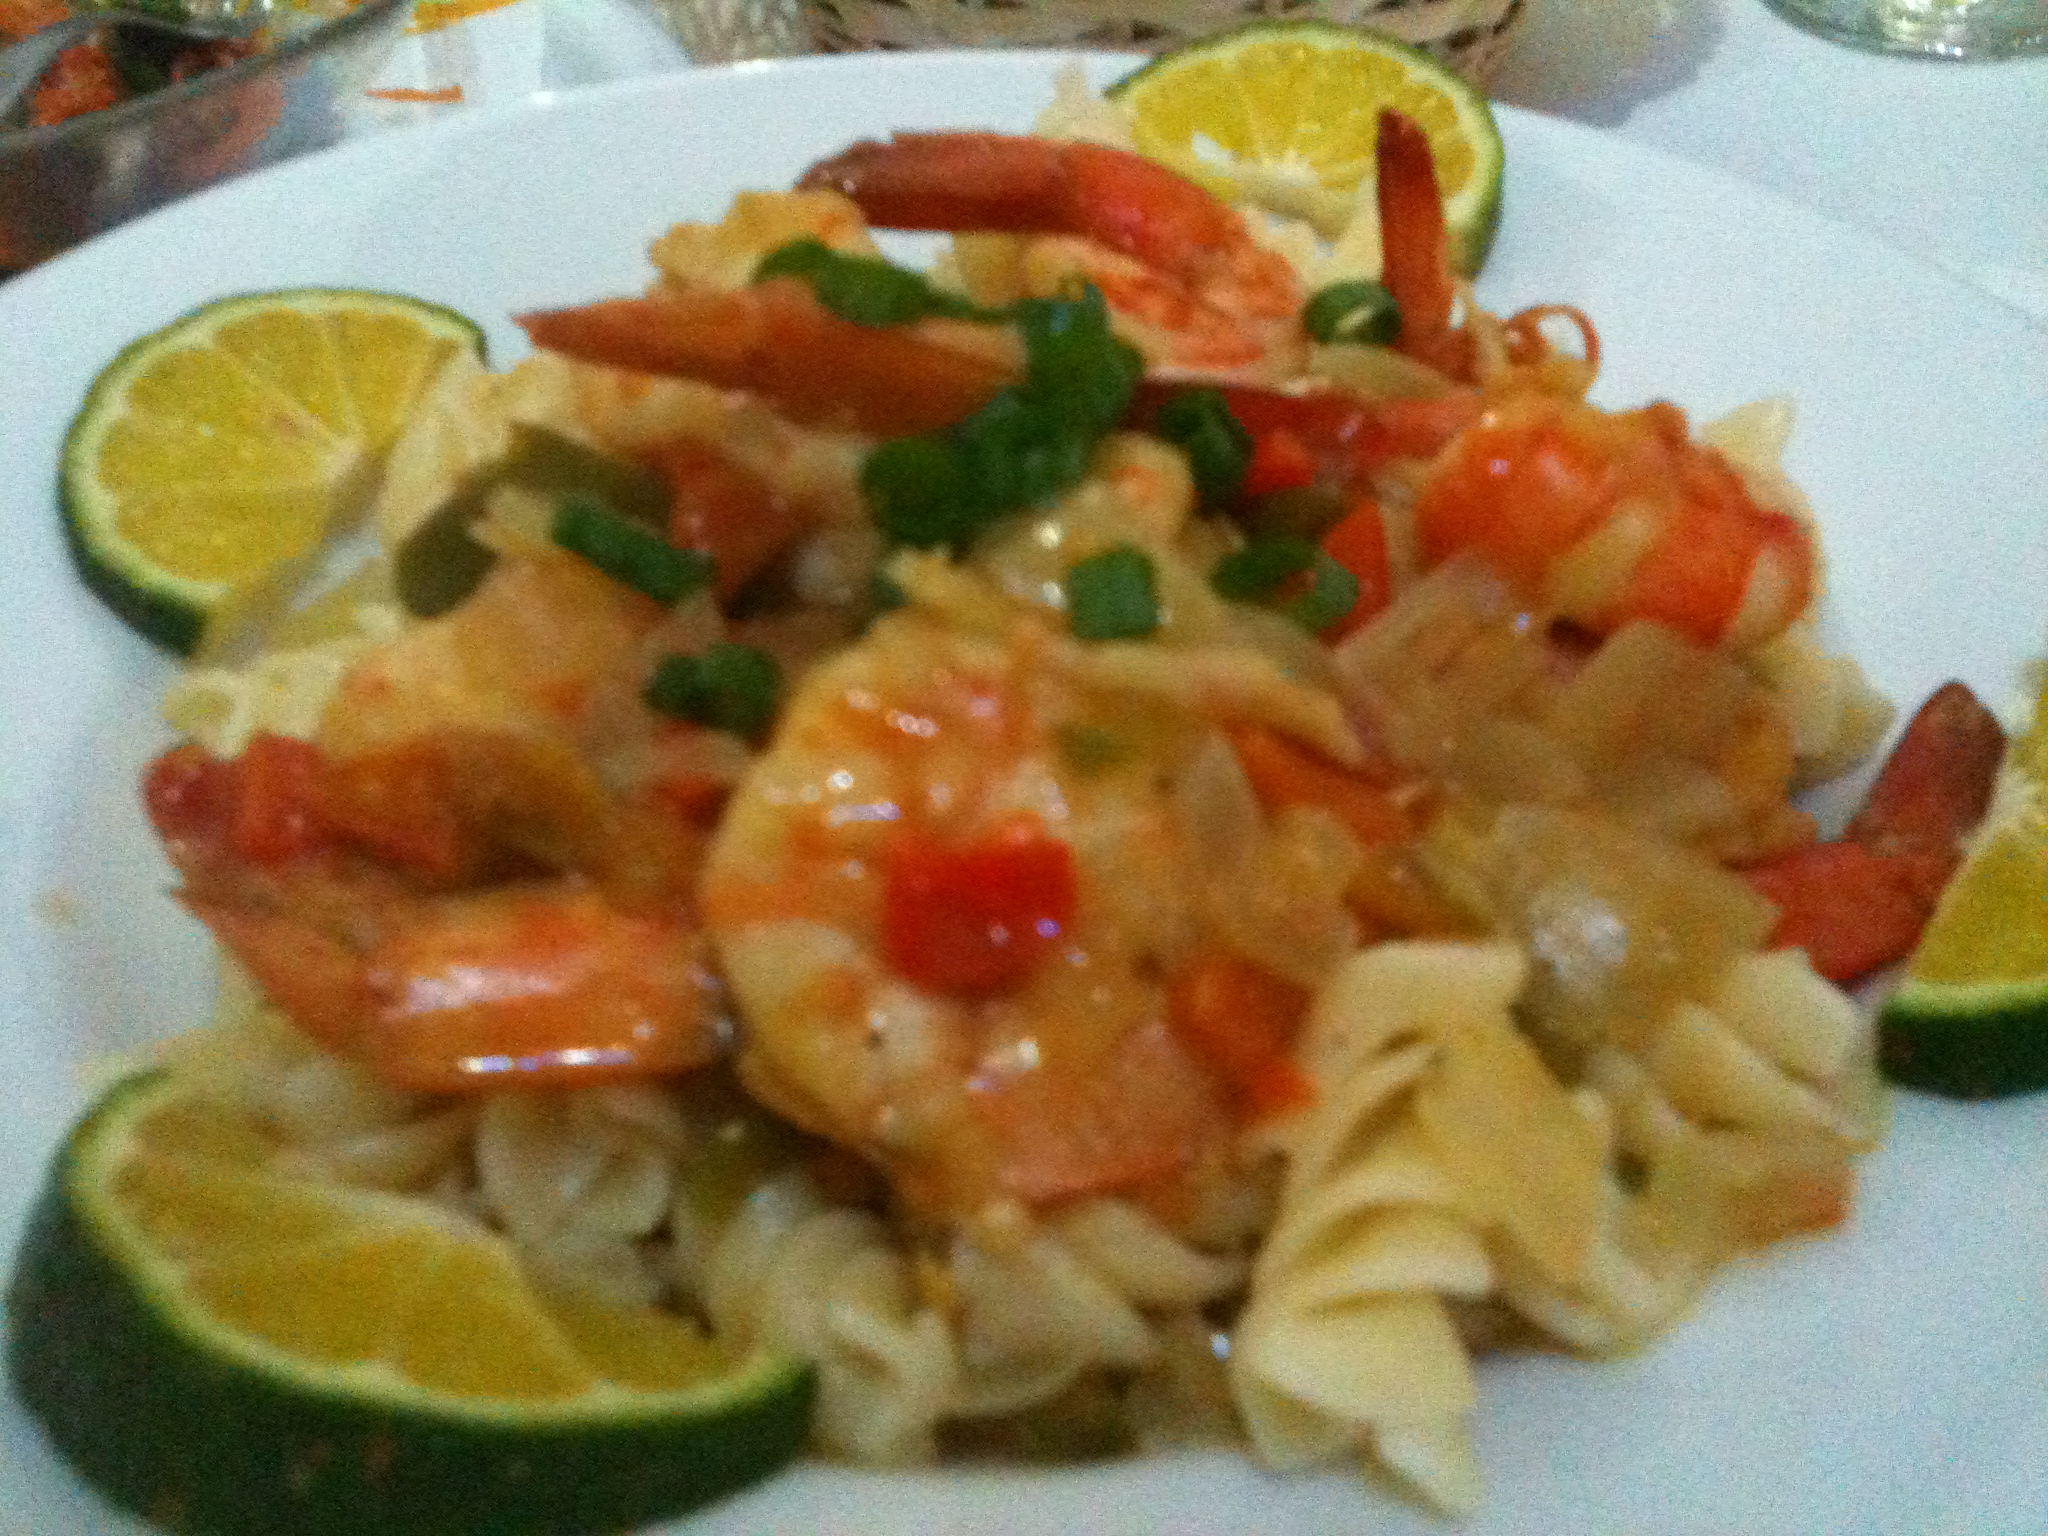 Shrimp Salad with Sour Orange